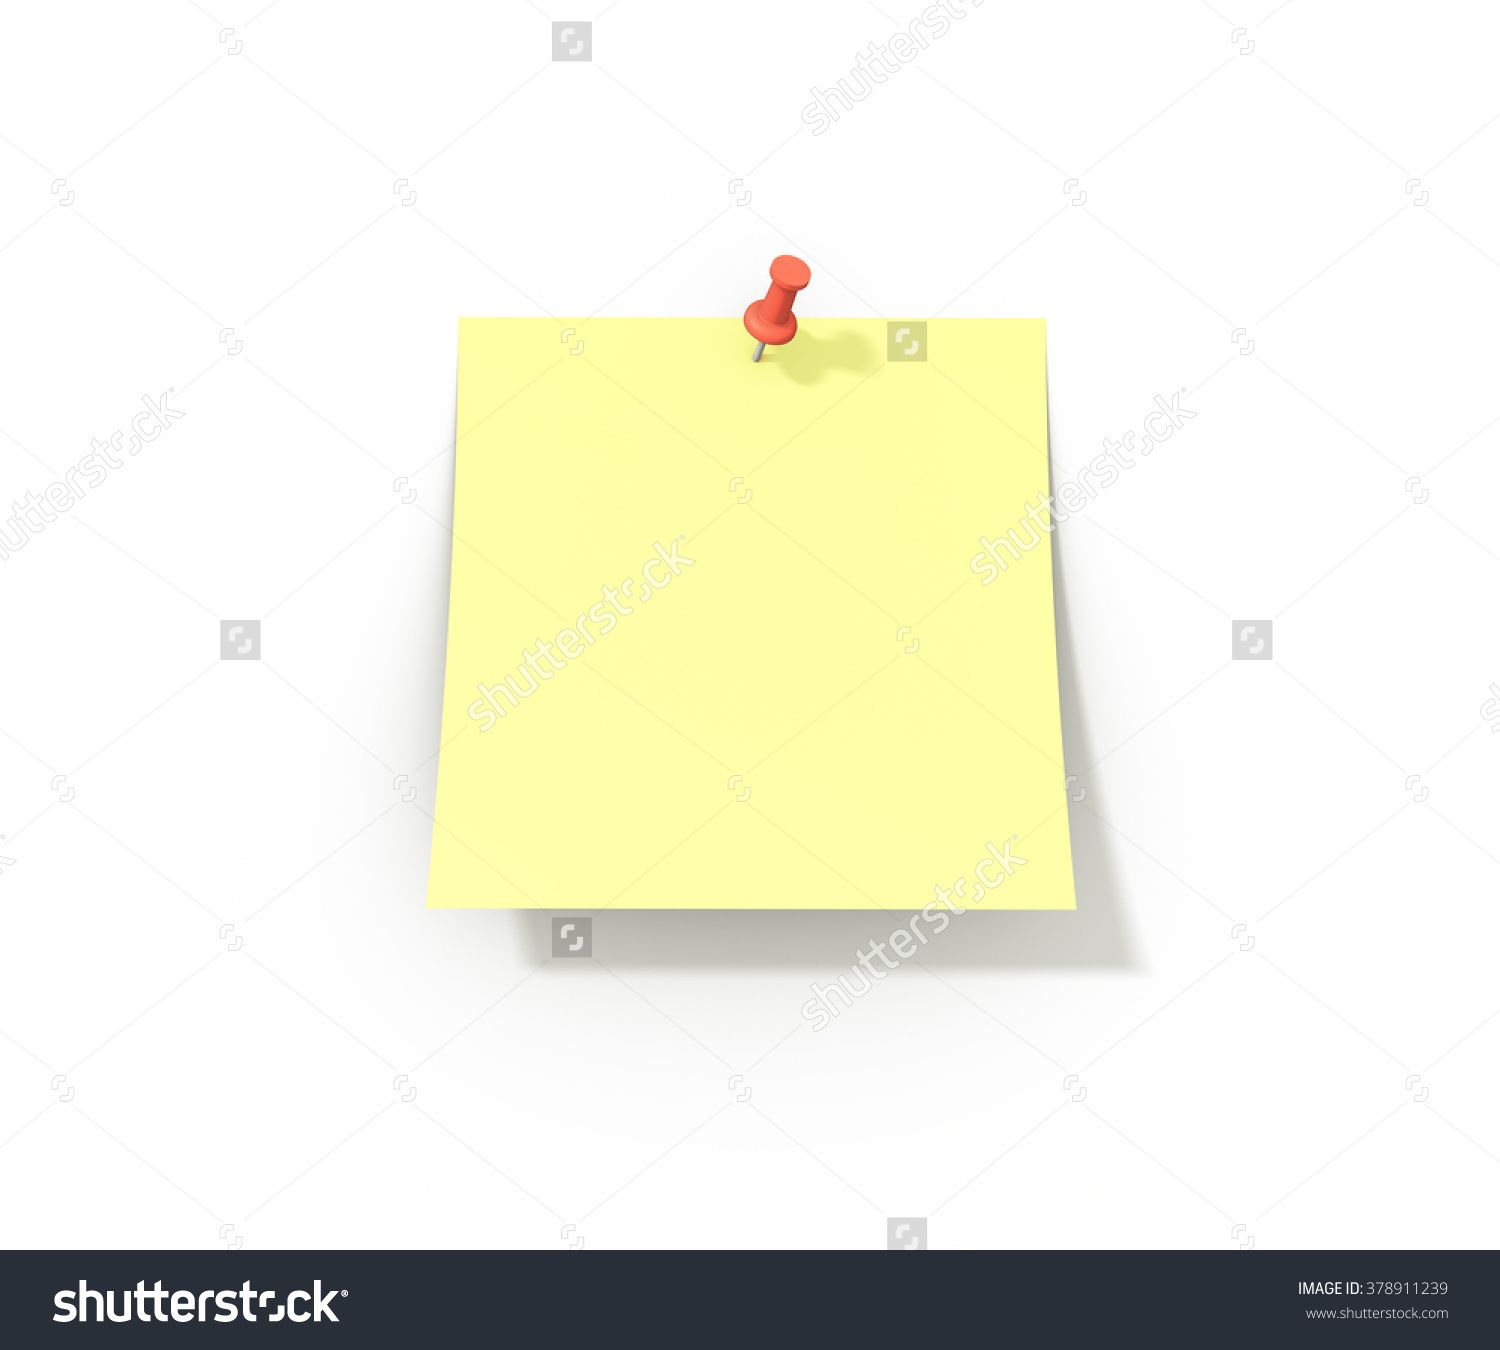 Sticky Note Illustration Blank Template With A Push Pin And Soft